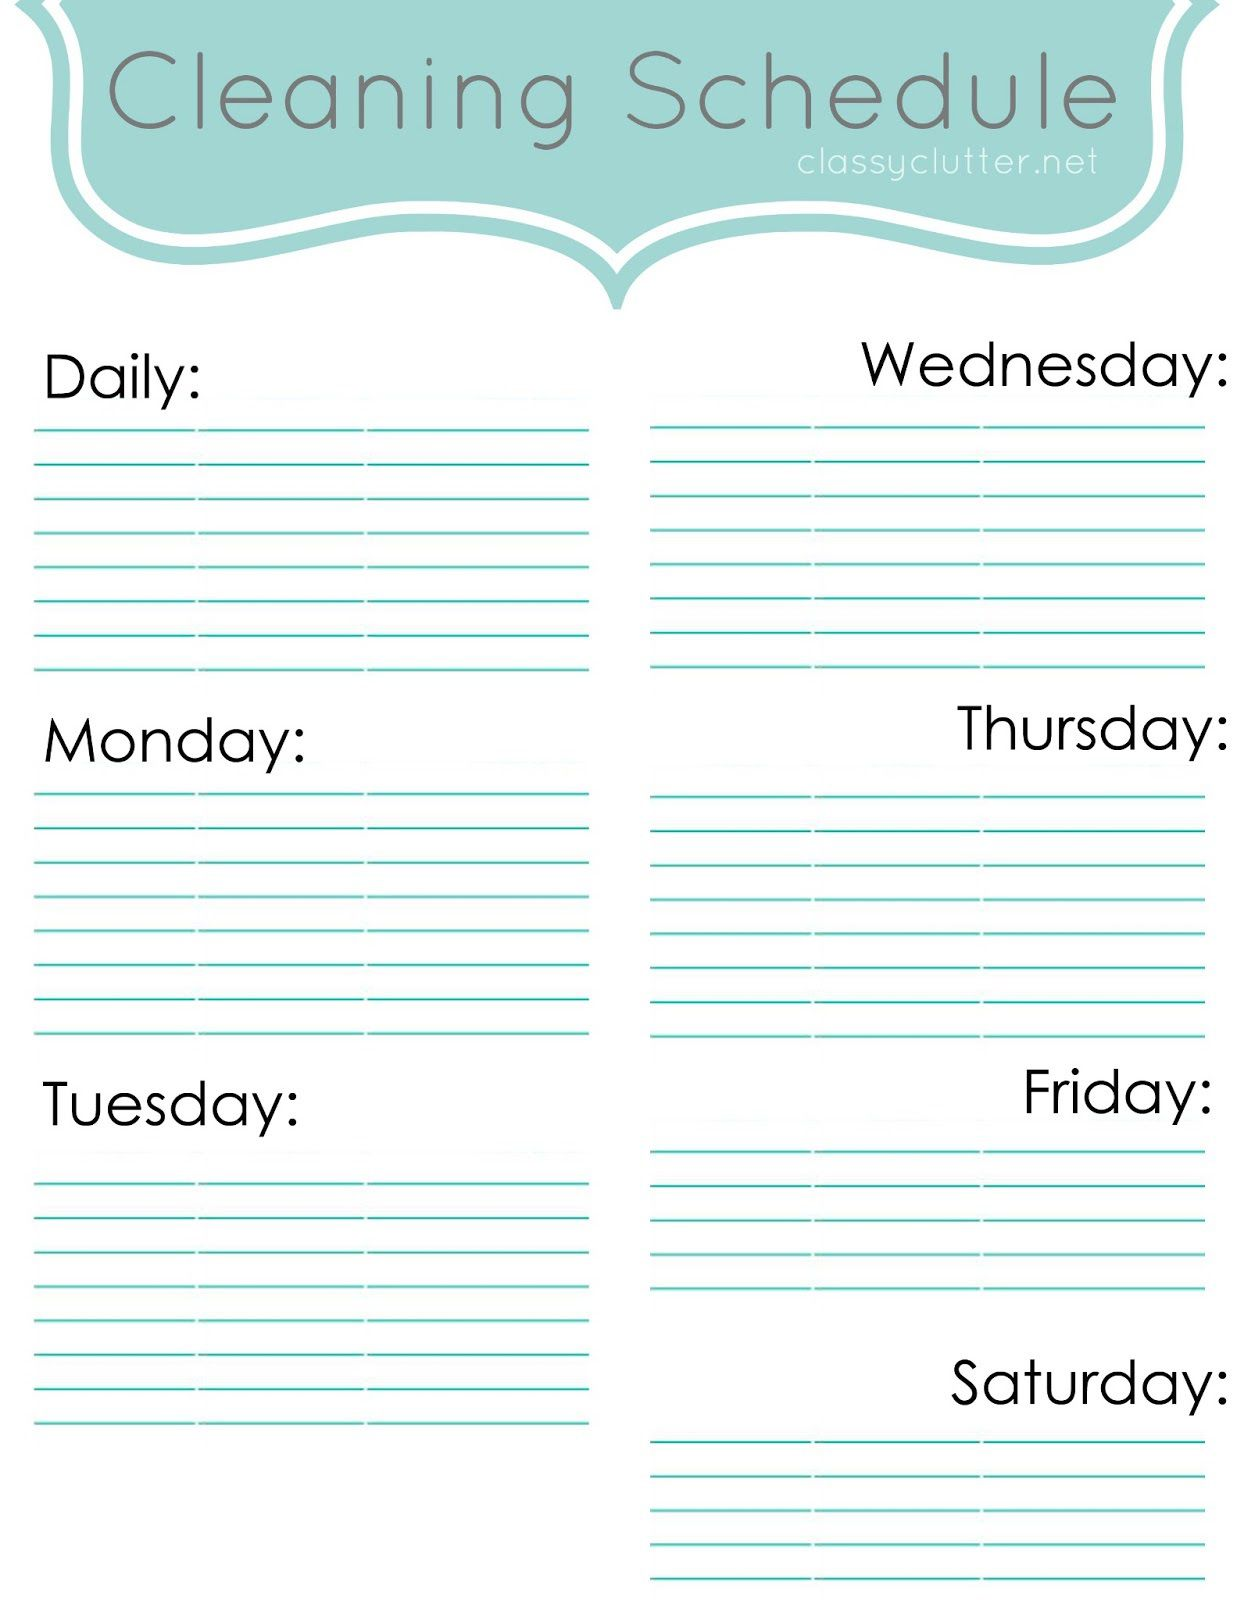 009 Wondrou Weekly Cleaning Schedule Form High Definition  Template Restaurant ExcelFull